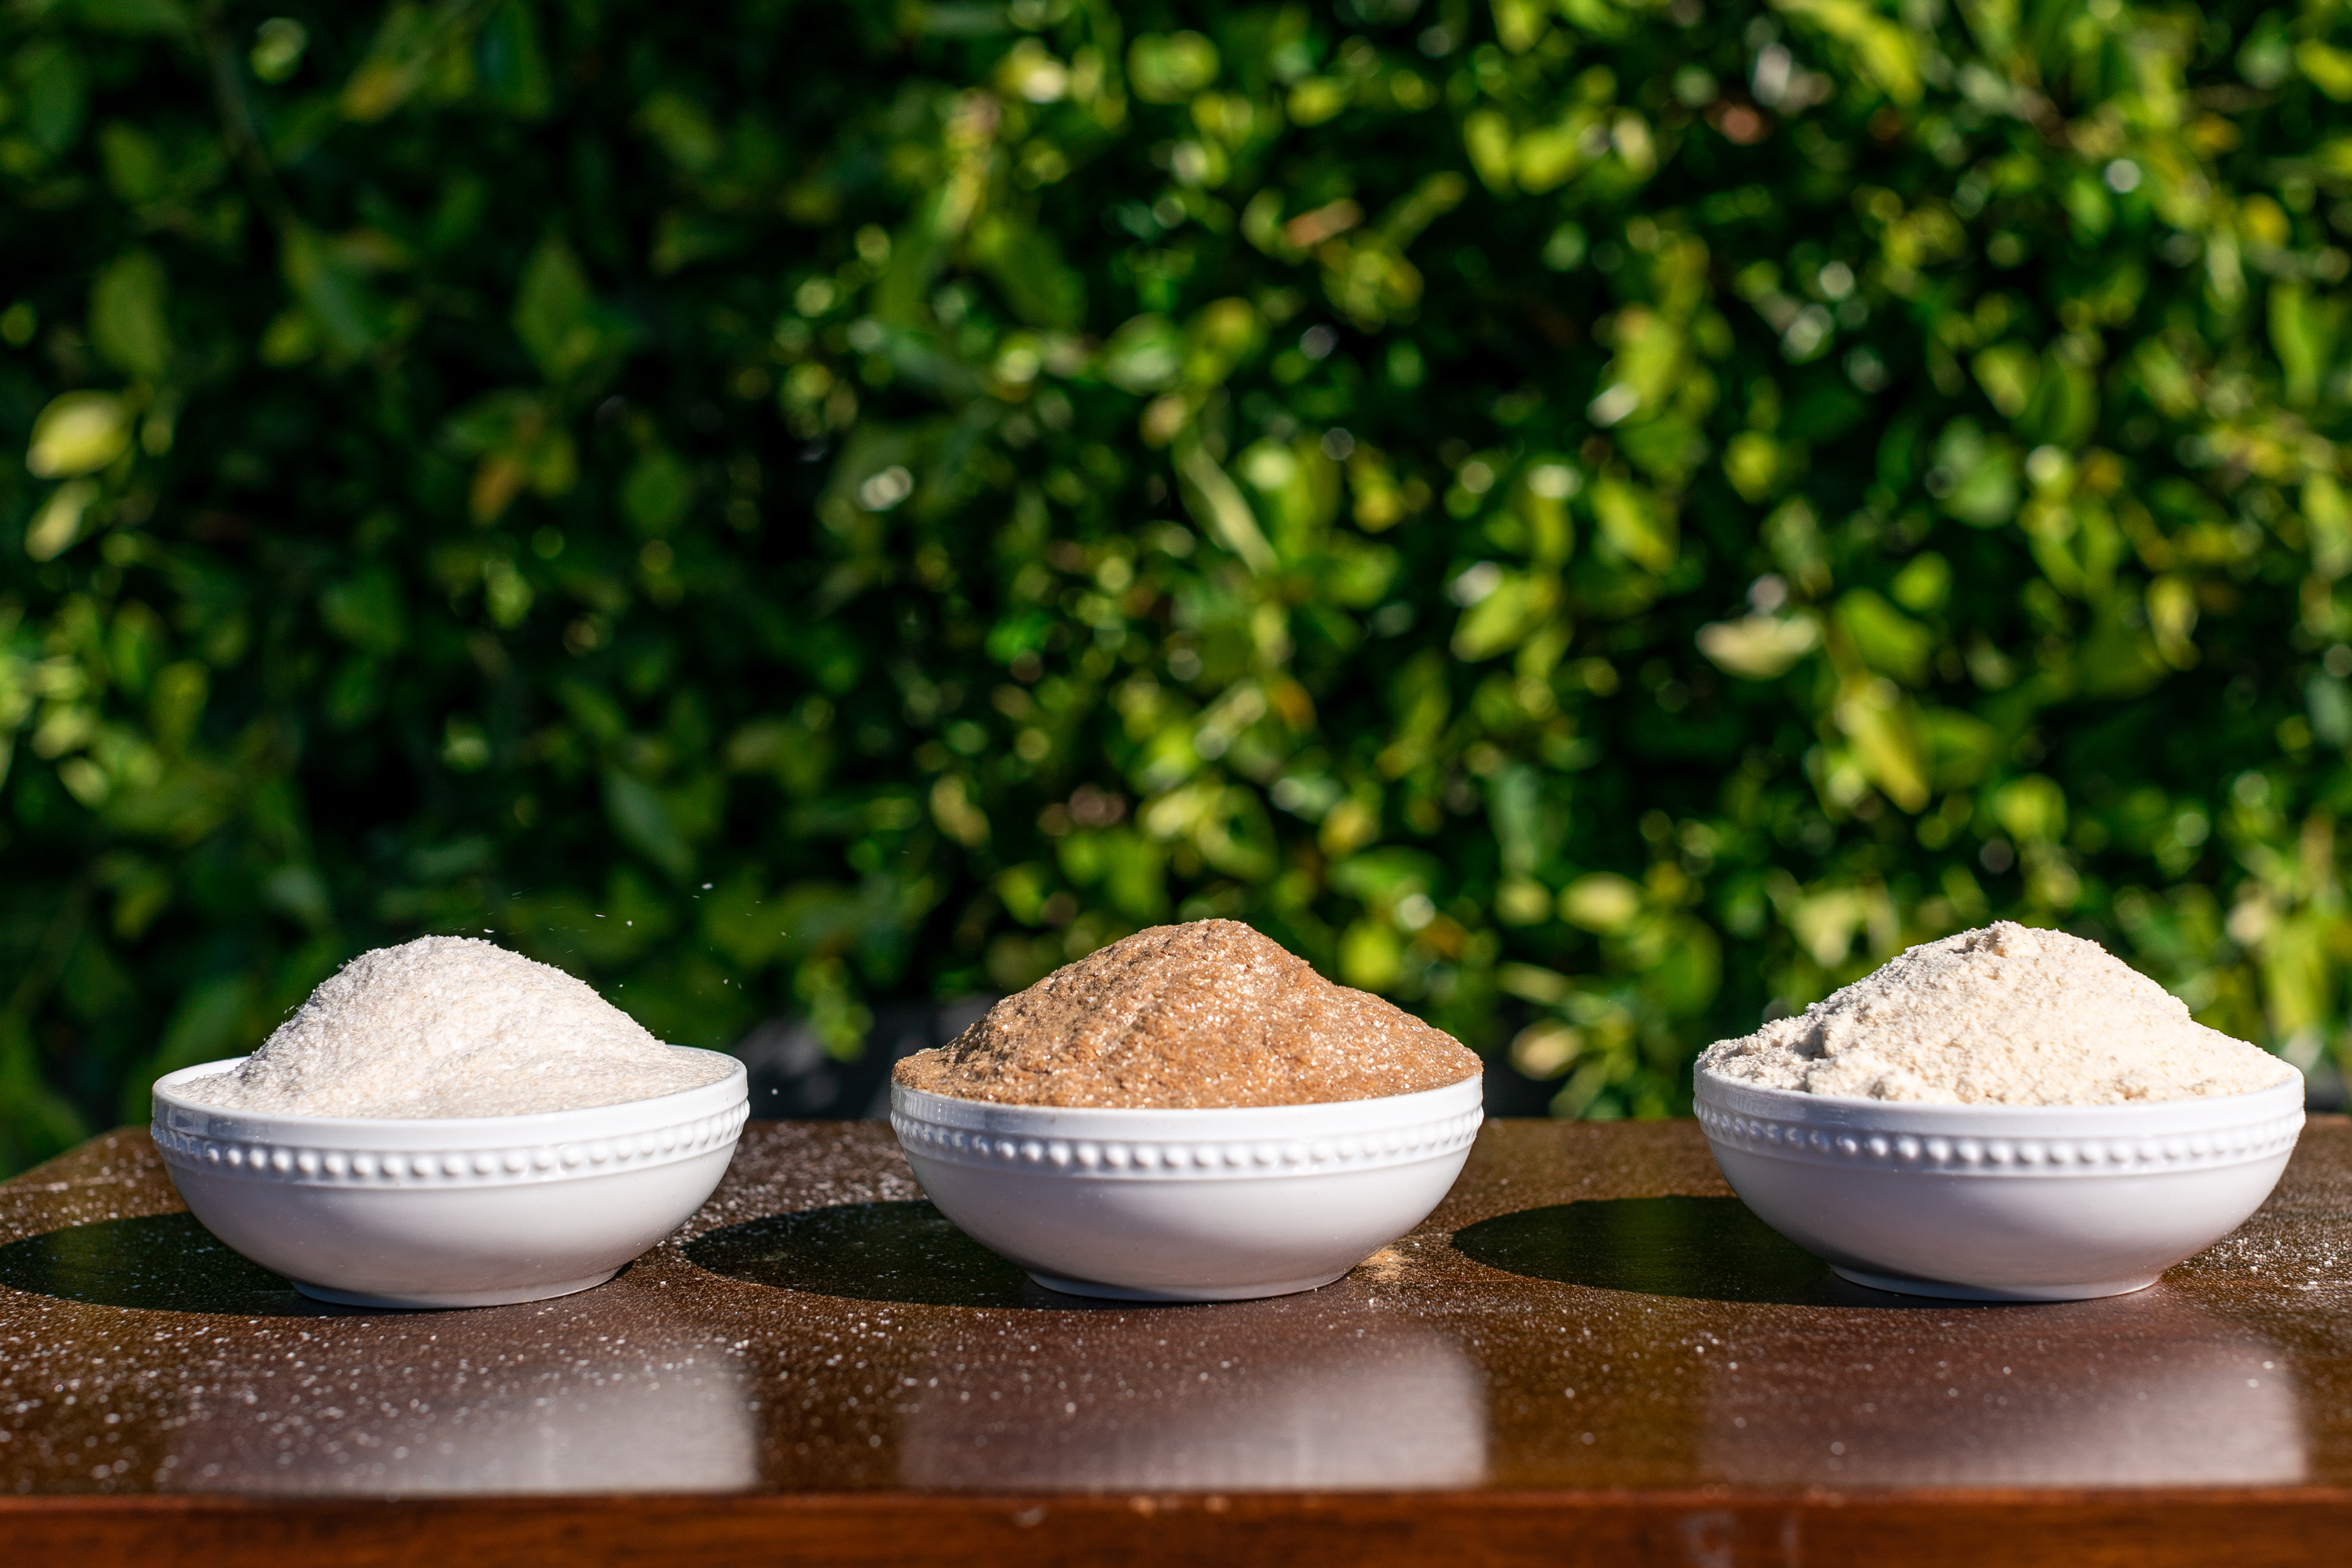 Three bowls of AgriFiber MFO, MFC, and BFG products